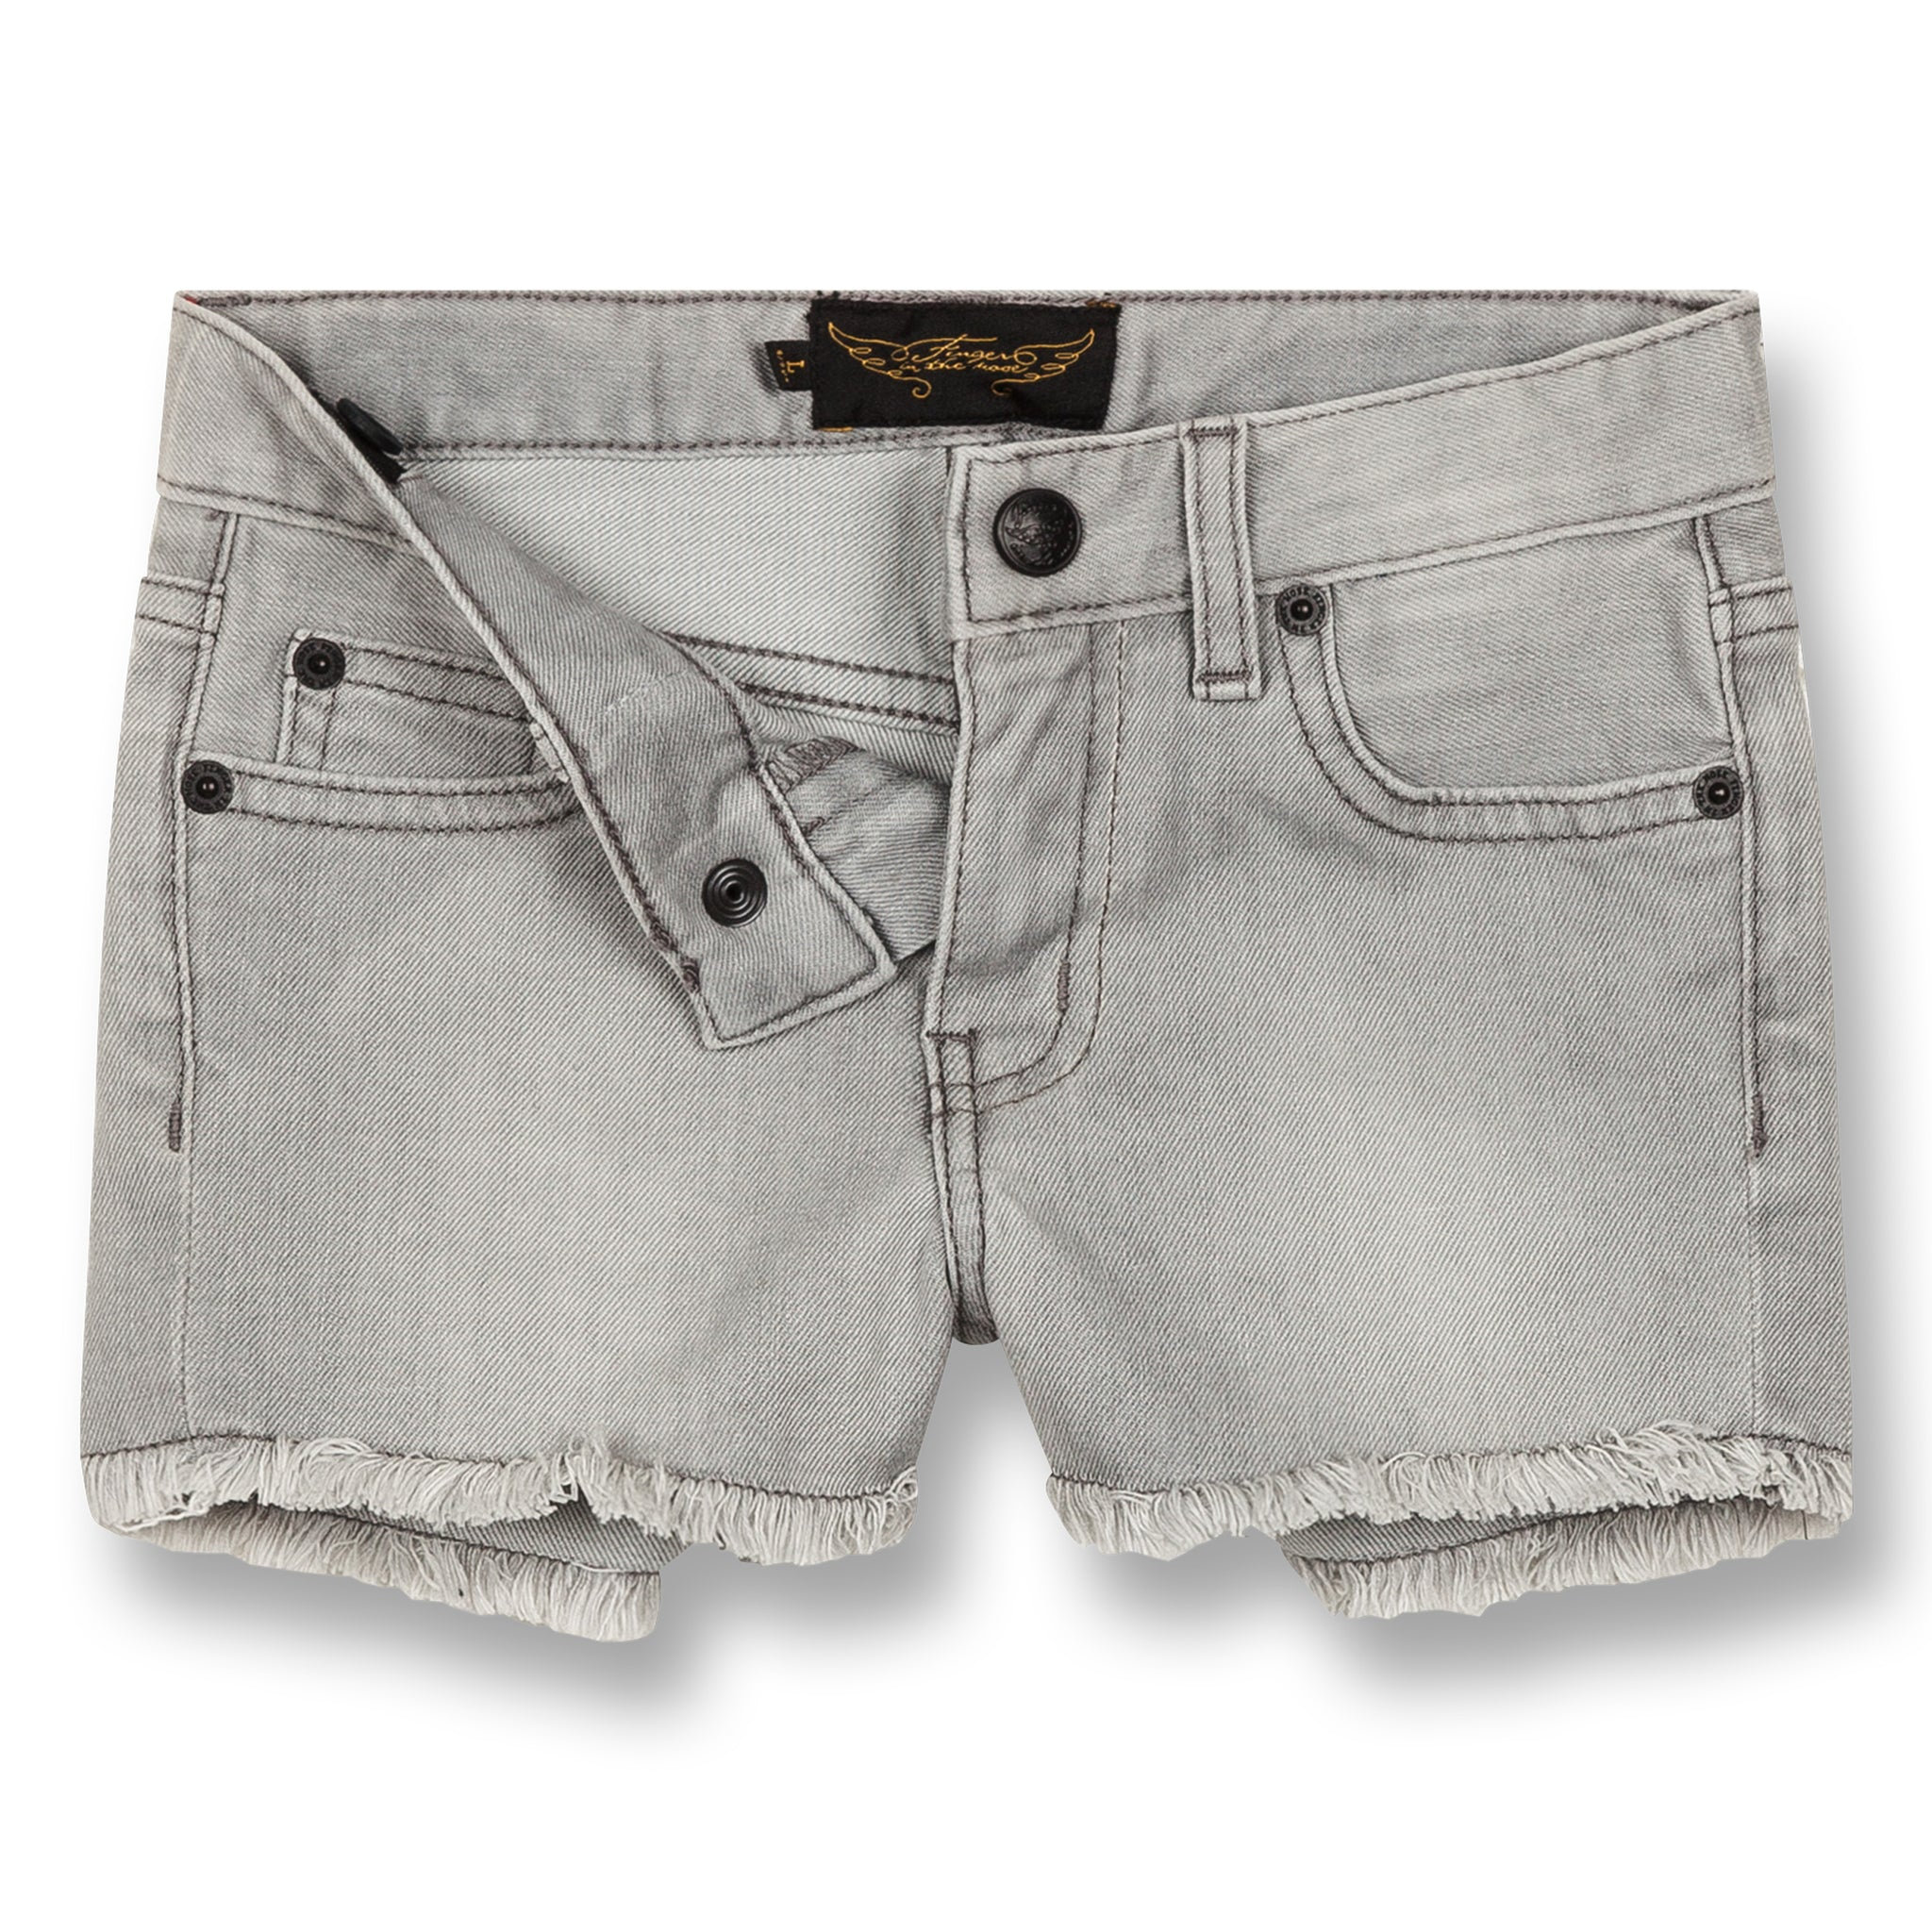 NOVA Bleached Grey Fringes - 5 Pocket Mini Shorts 2